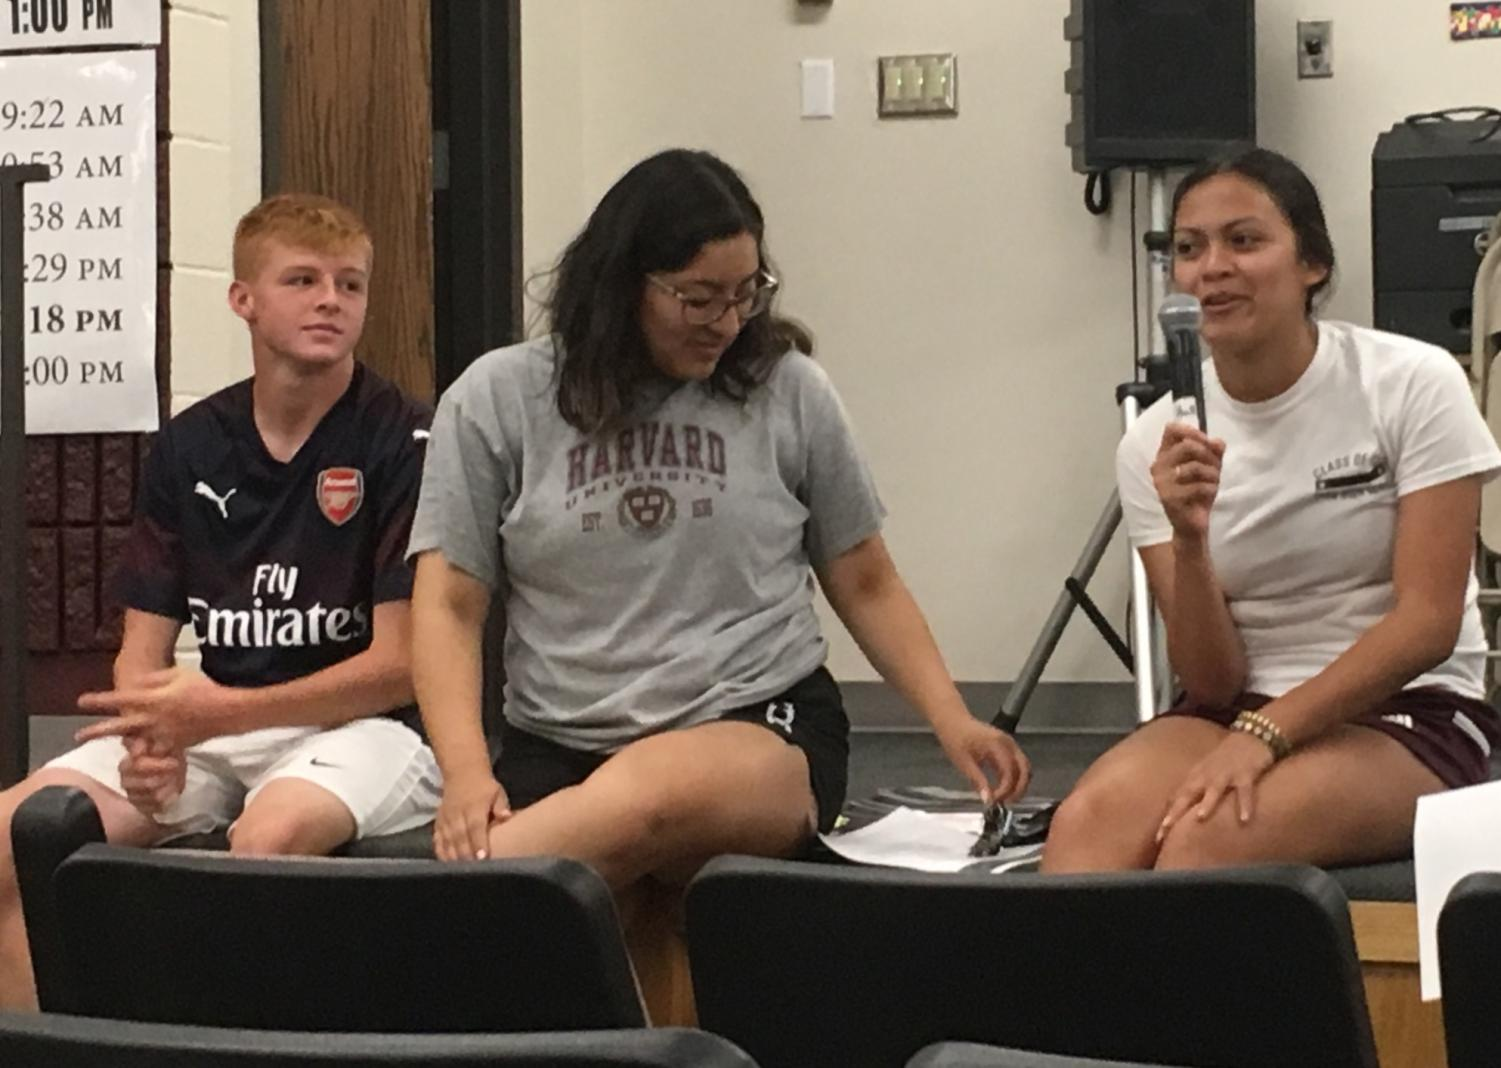 Senior Yesenia Moldonado speaks about her experience traveling to Scotland and Ireland through EF Tours  during the informational meeting about the 2021 trip to Germany, France, Portugal and Spain offered through EF Tours. Seniors Joanna Carillo and Matt Goodale also attended the Scotland and Ireland trip and shared their favorite parts of the trip.